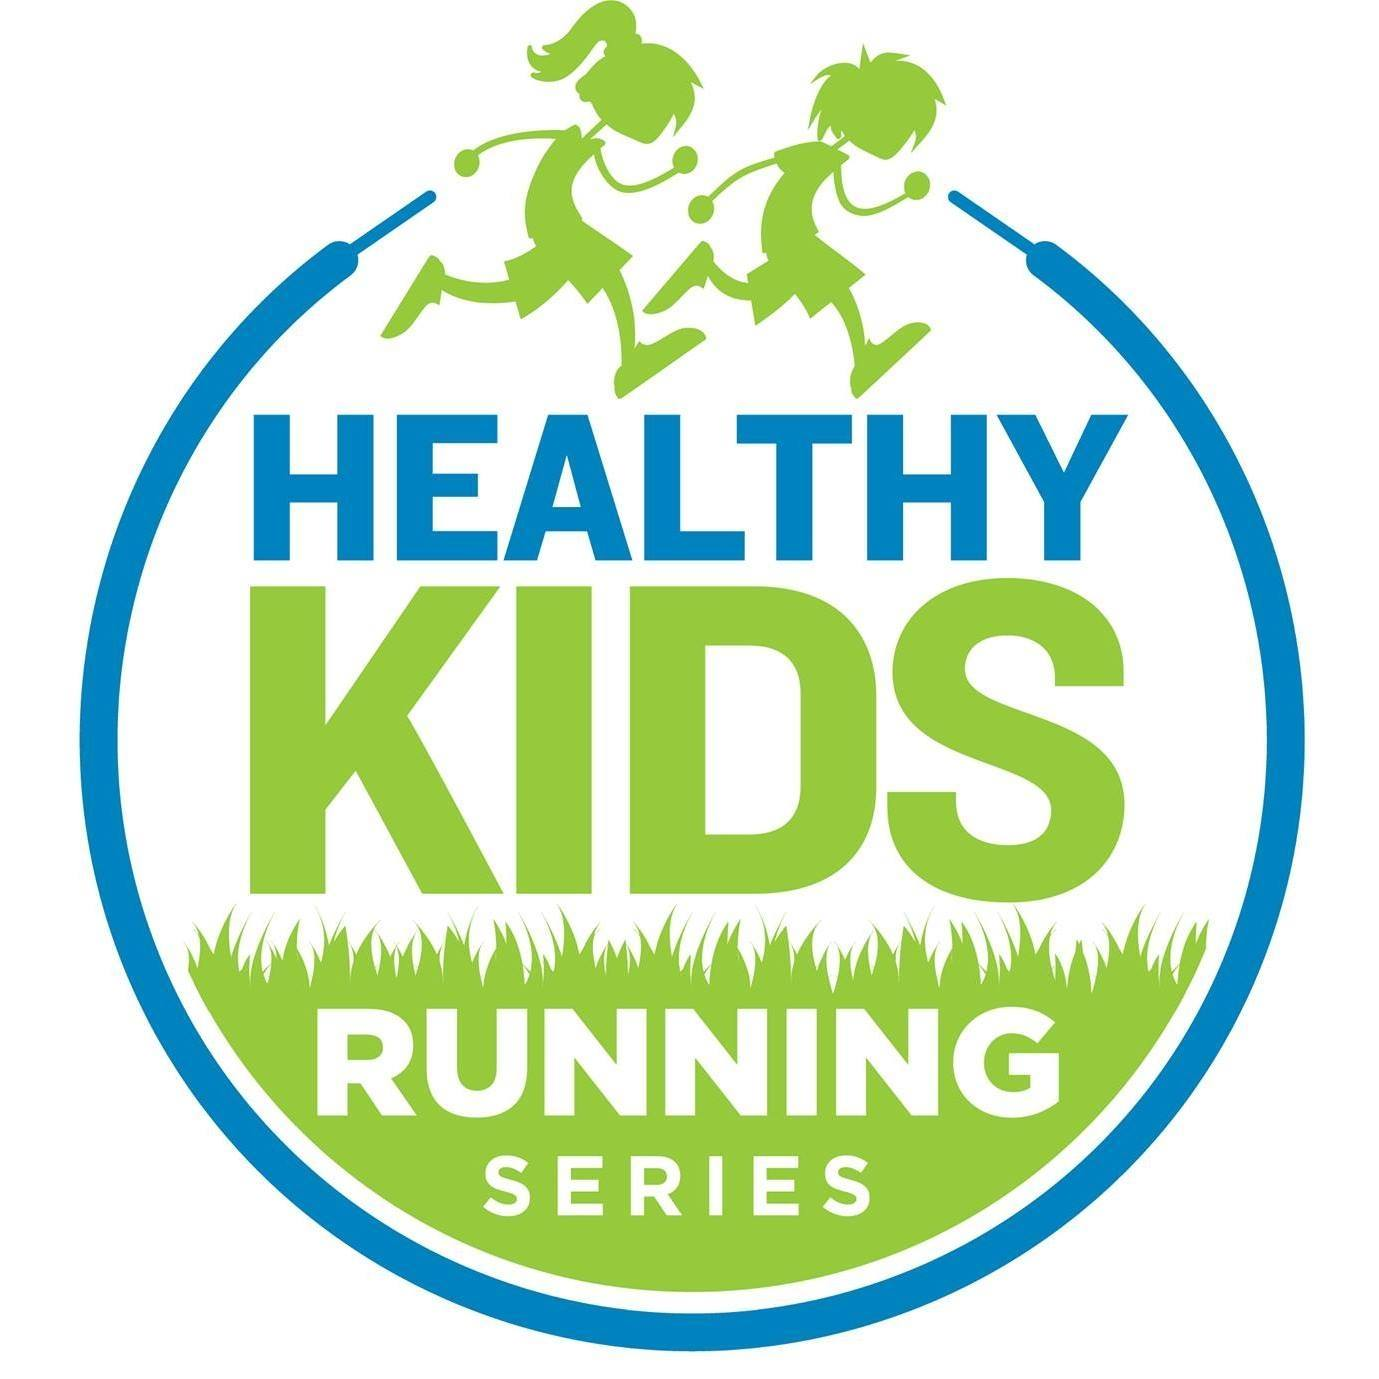 Healthy Kids Running Series Fall \u002D Towson, MD - cover image